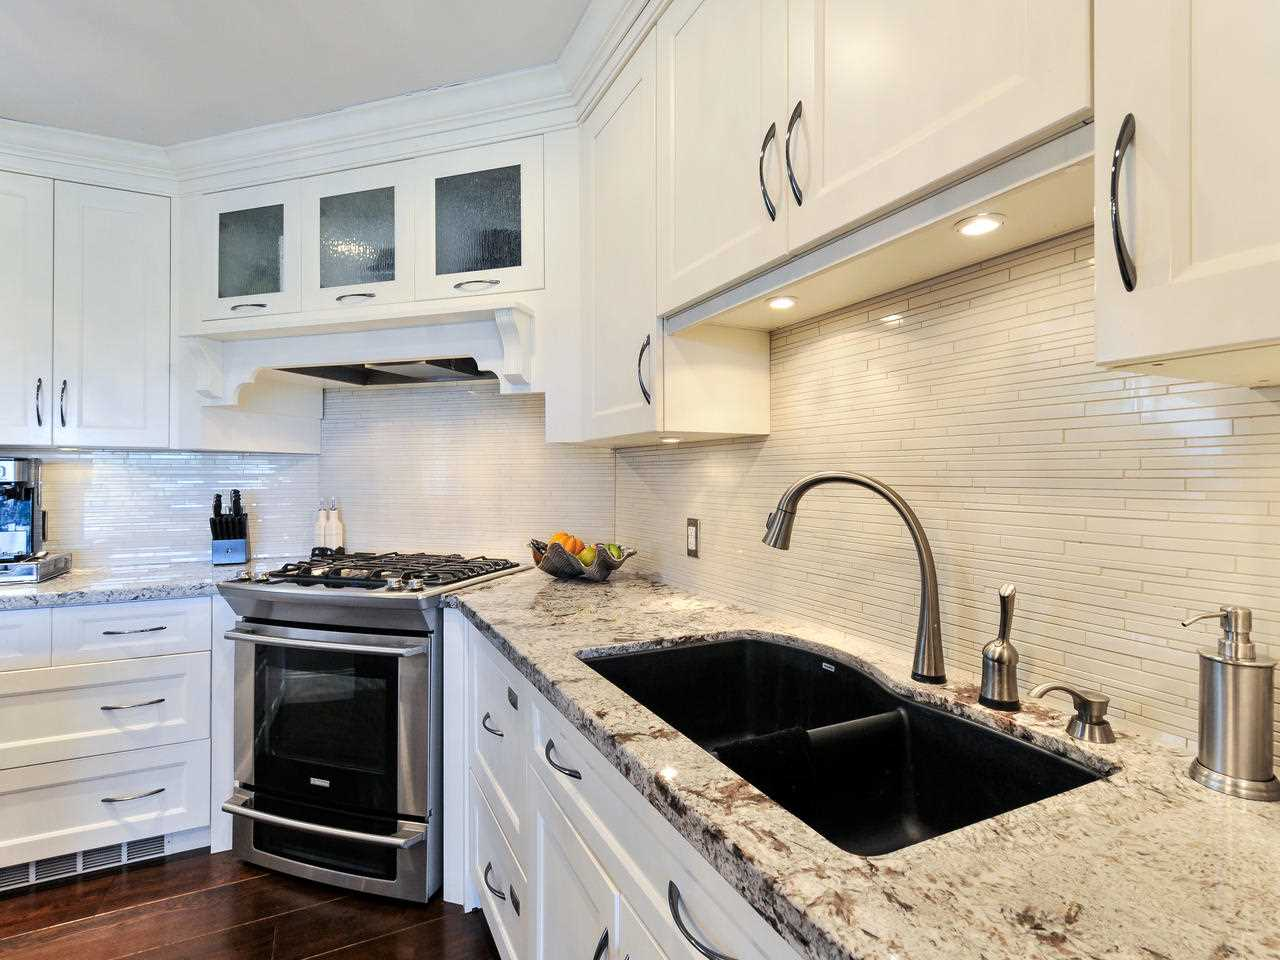 11 14025 NICO WYND PLACE - Elgin Chantrell Apartment/Condo for sale, 2 Bedrooms (R2369861) - #7